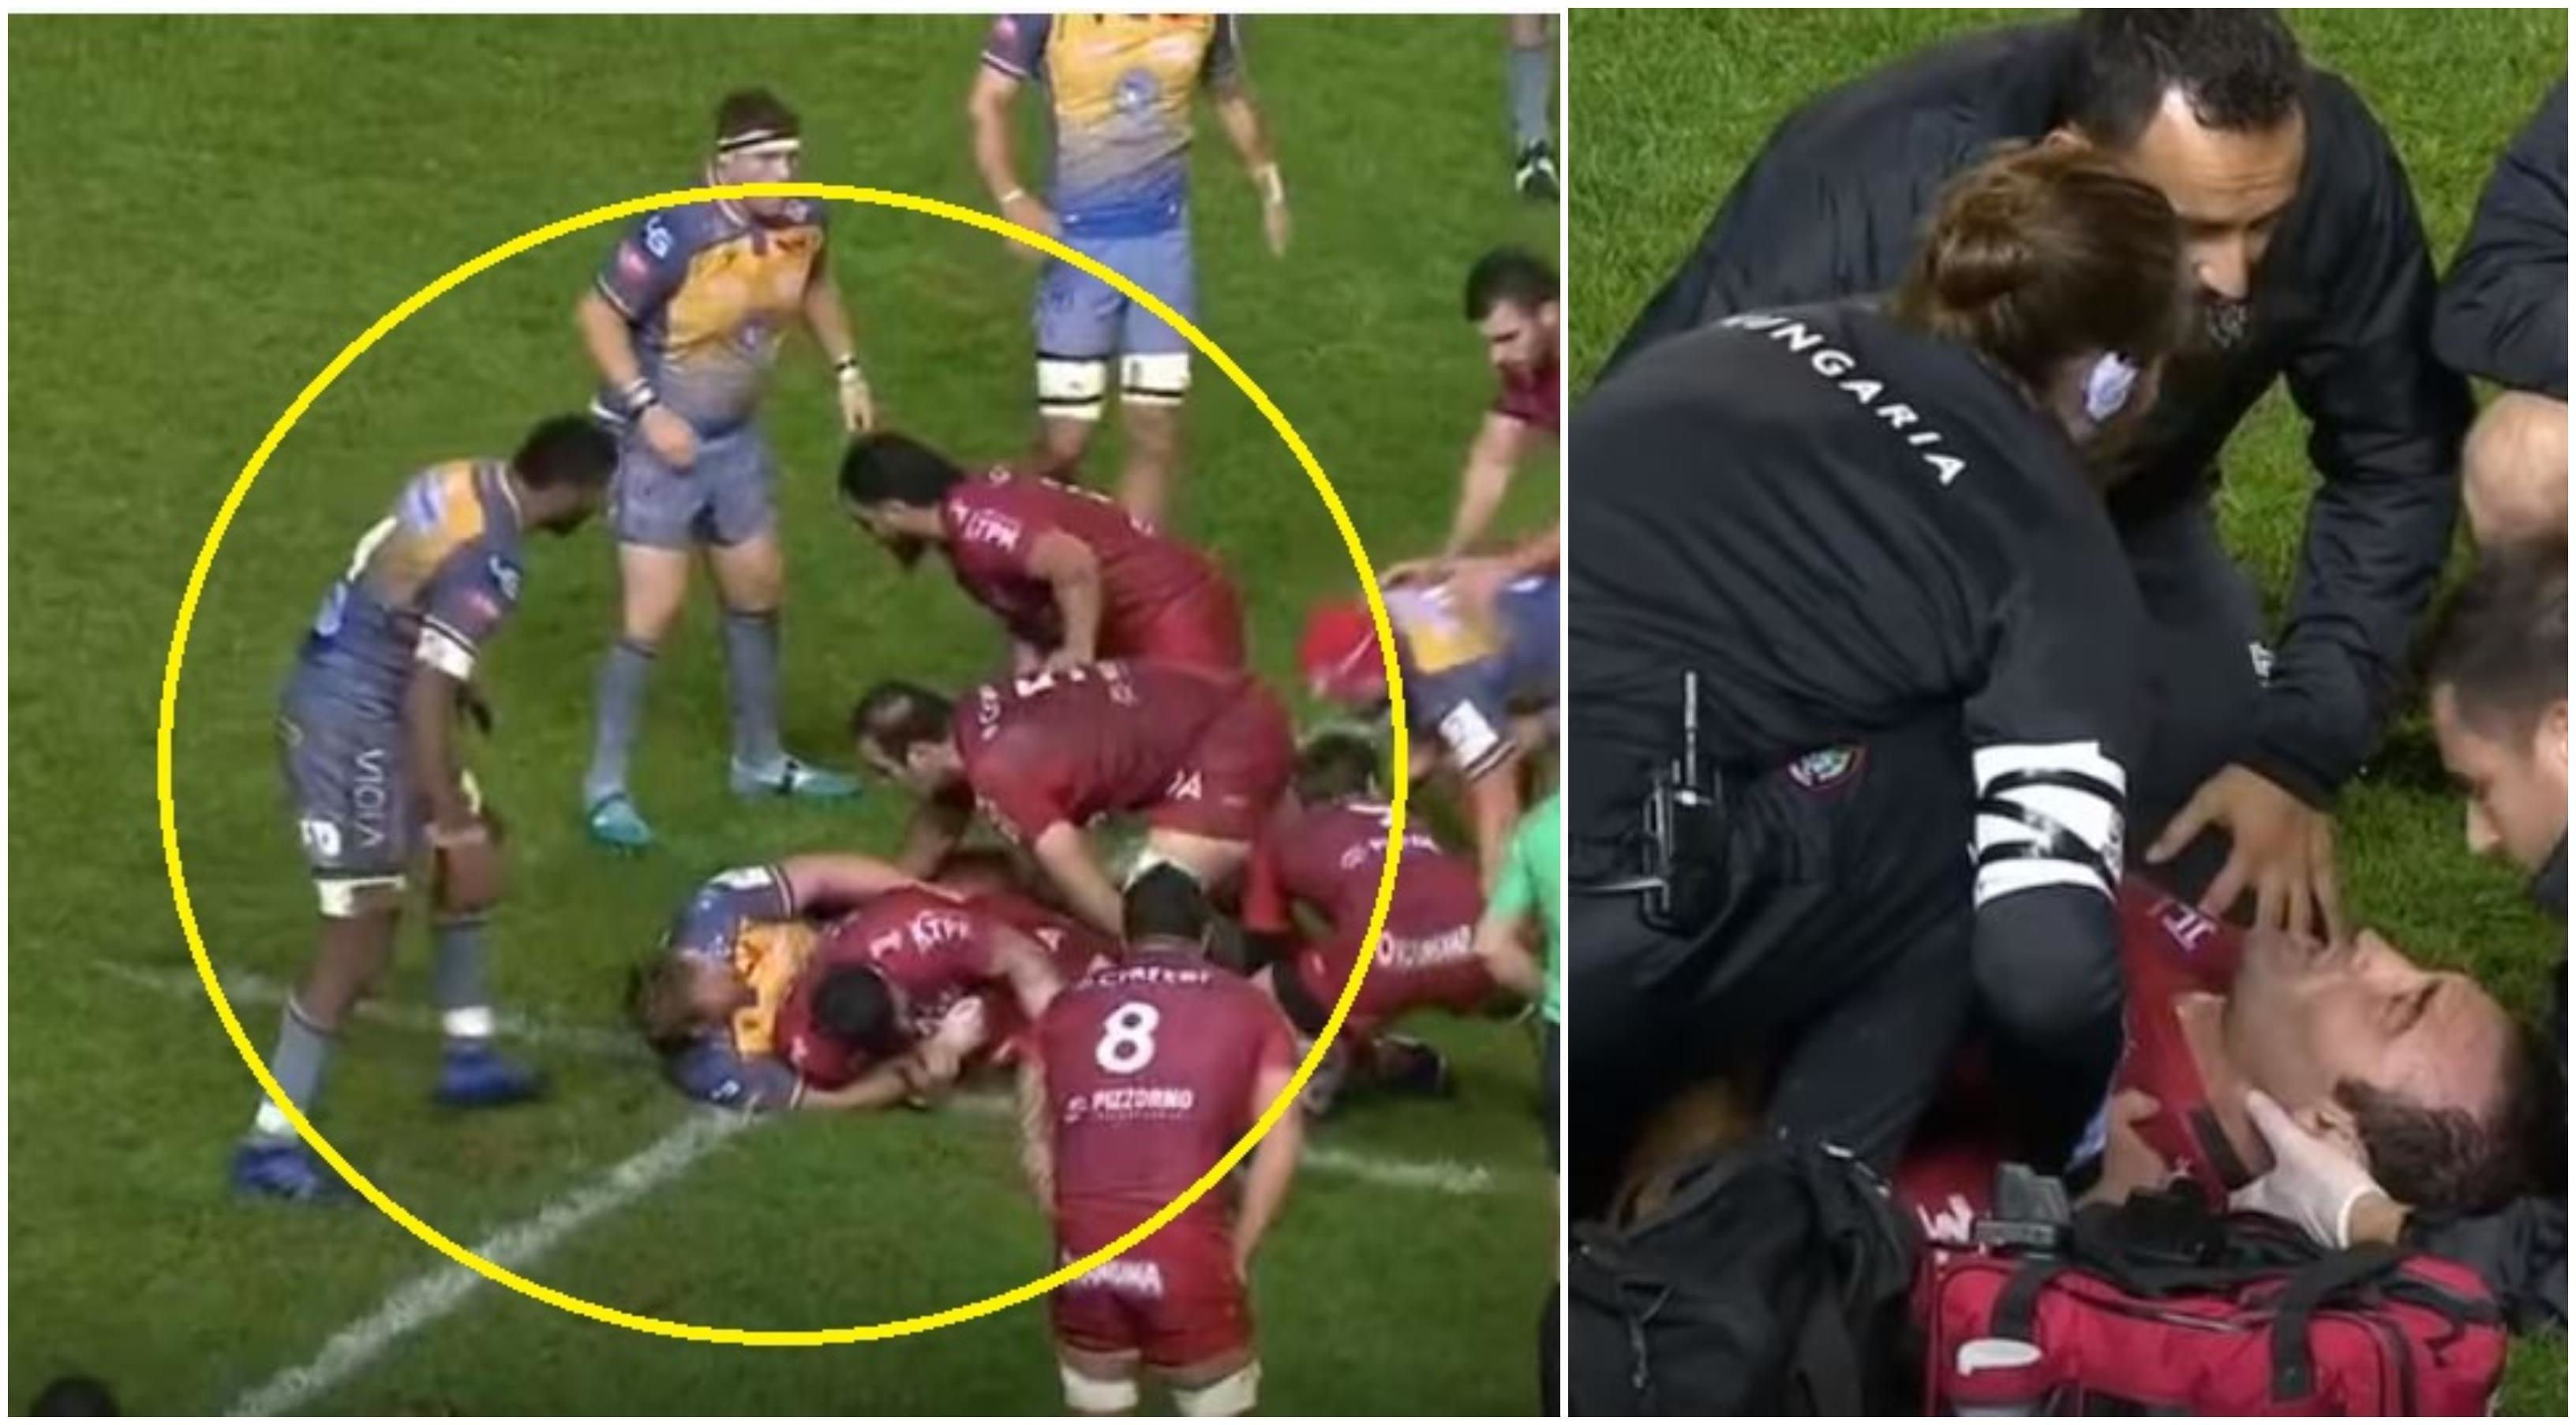 'We've found one' - Gorgodze floored by red card Fijian shoulder at the ruck